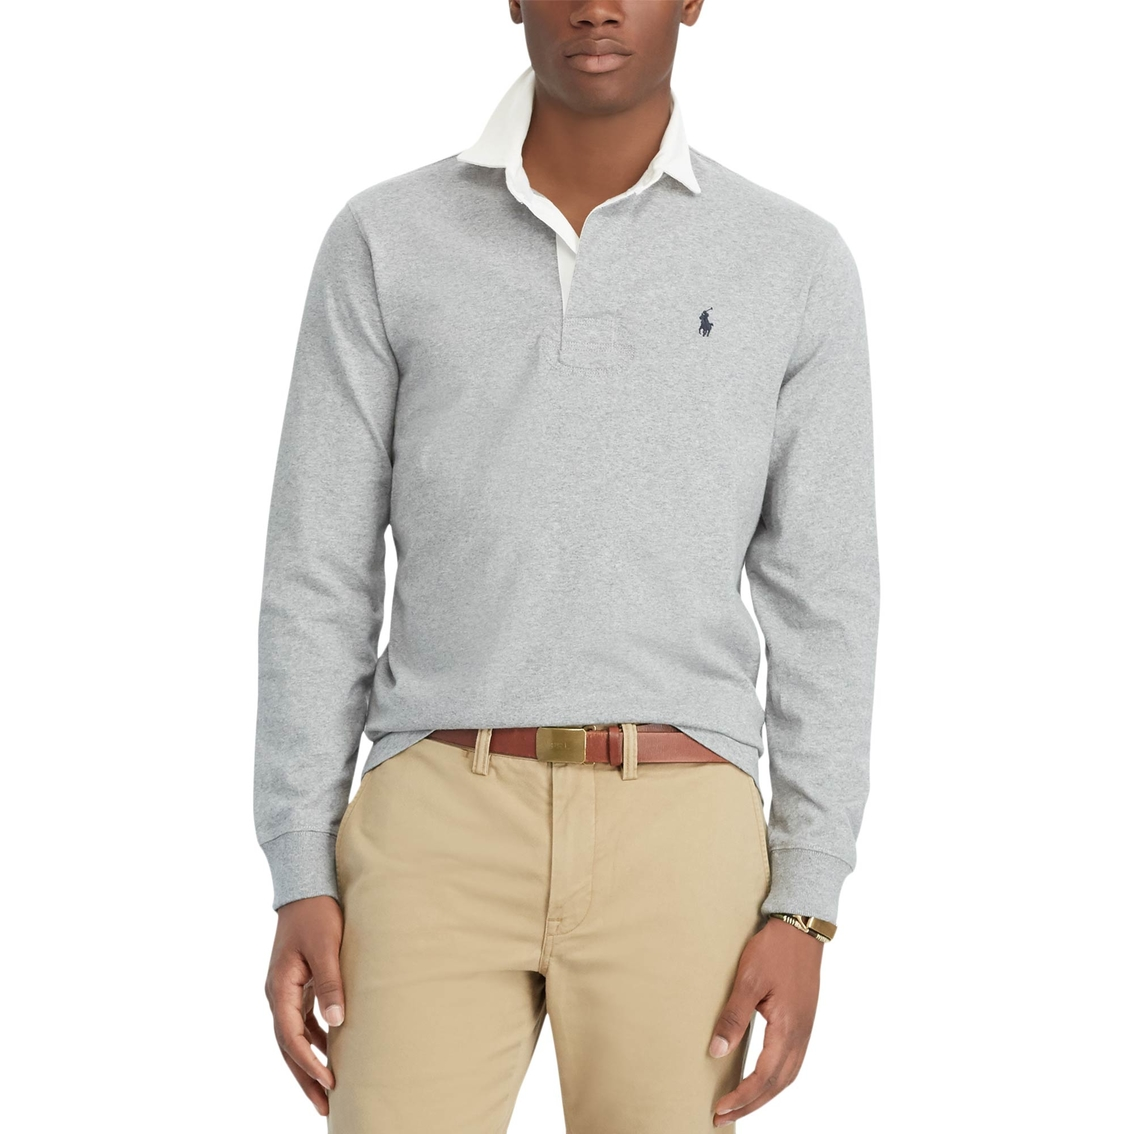 5b492ec54227 Polo Ralph Lauren The Iconic Rugby Shirt